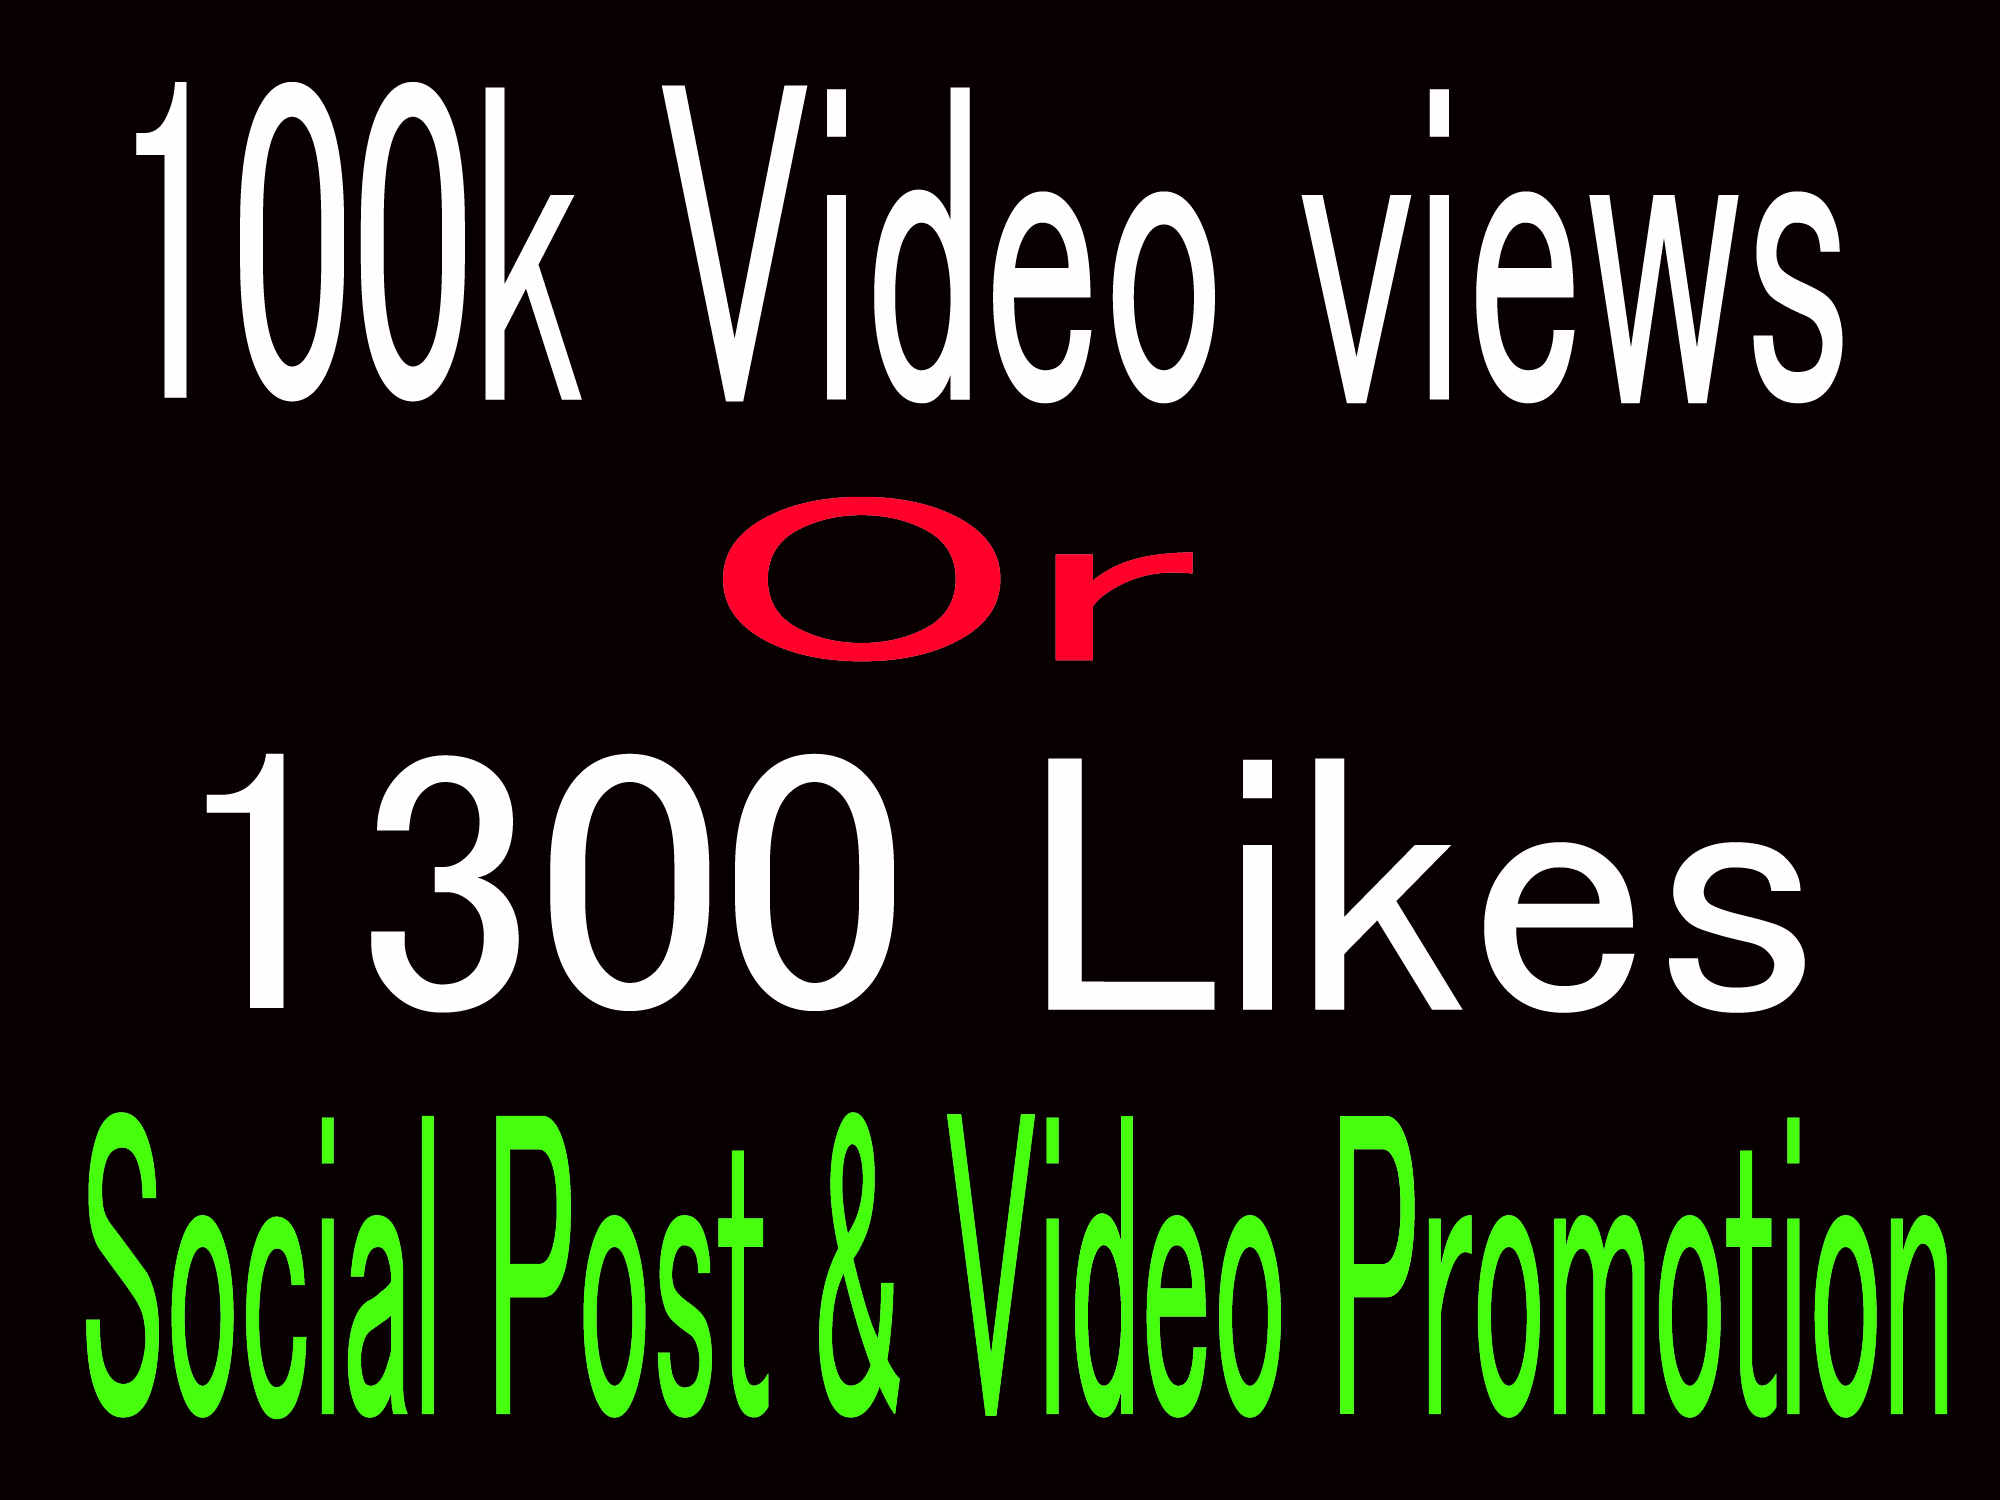 Instantly High-quality 100k Video Views or 1300 likes Promotion With Lifetime Guaranteed